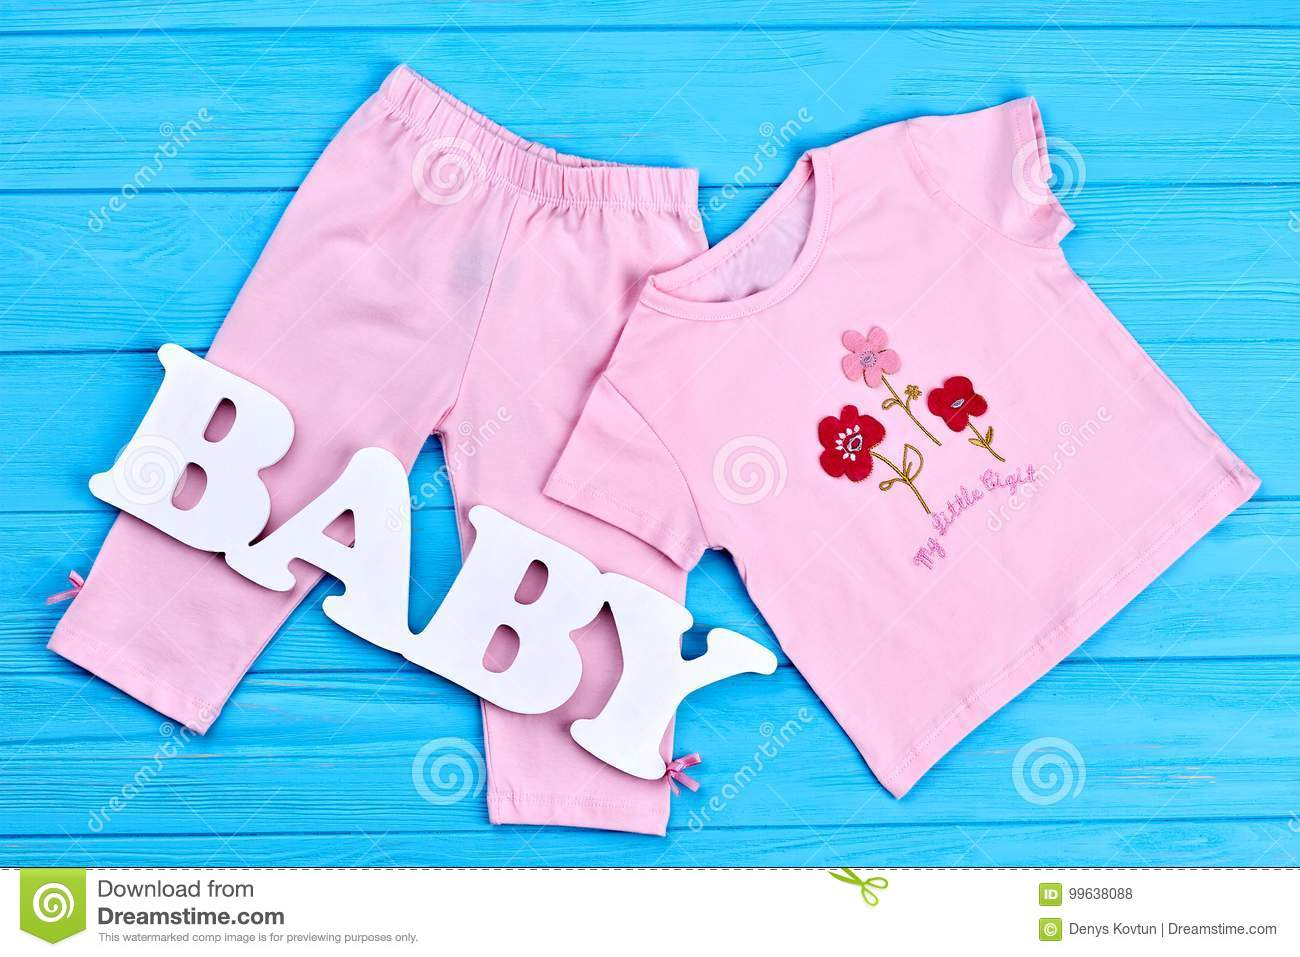 f84821cfd93b Baby-girl Summer Cotton Garment. Stock Photo - Image of infant ...